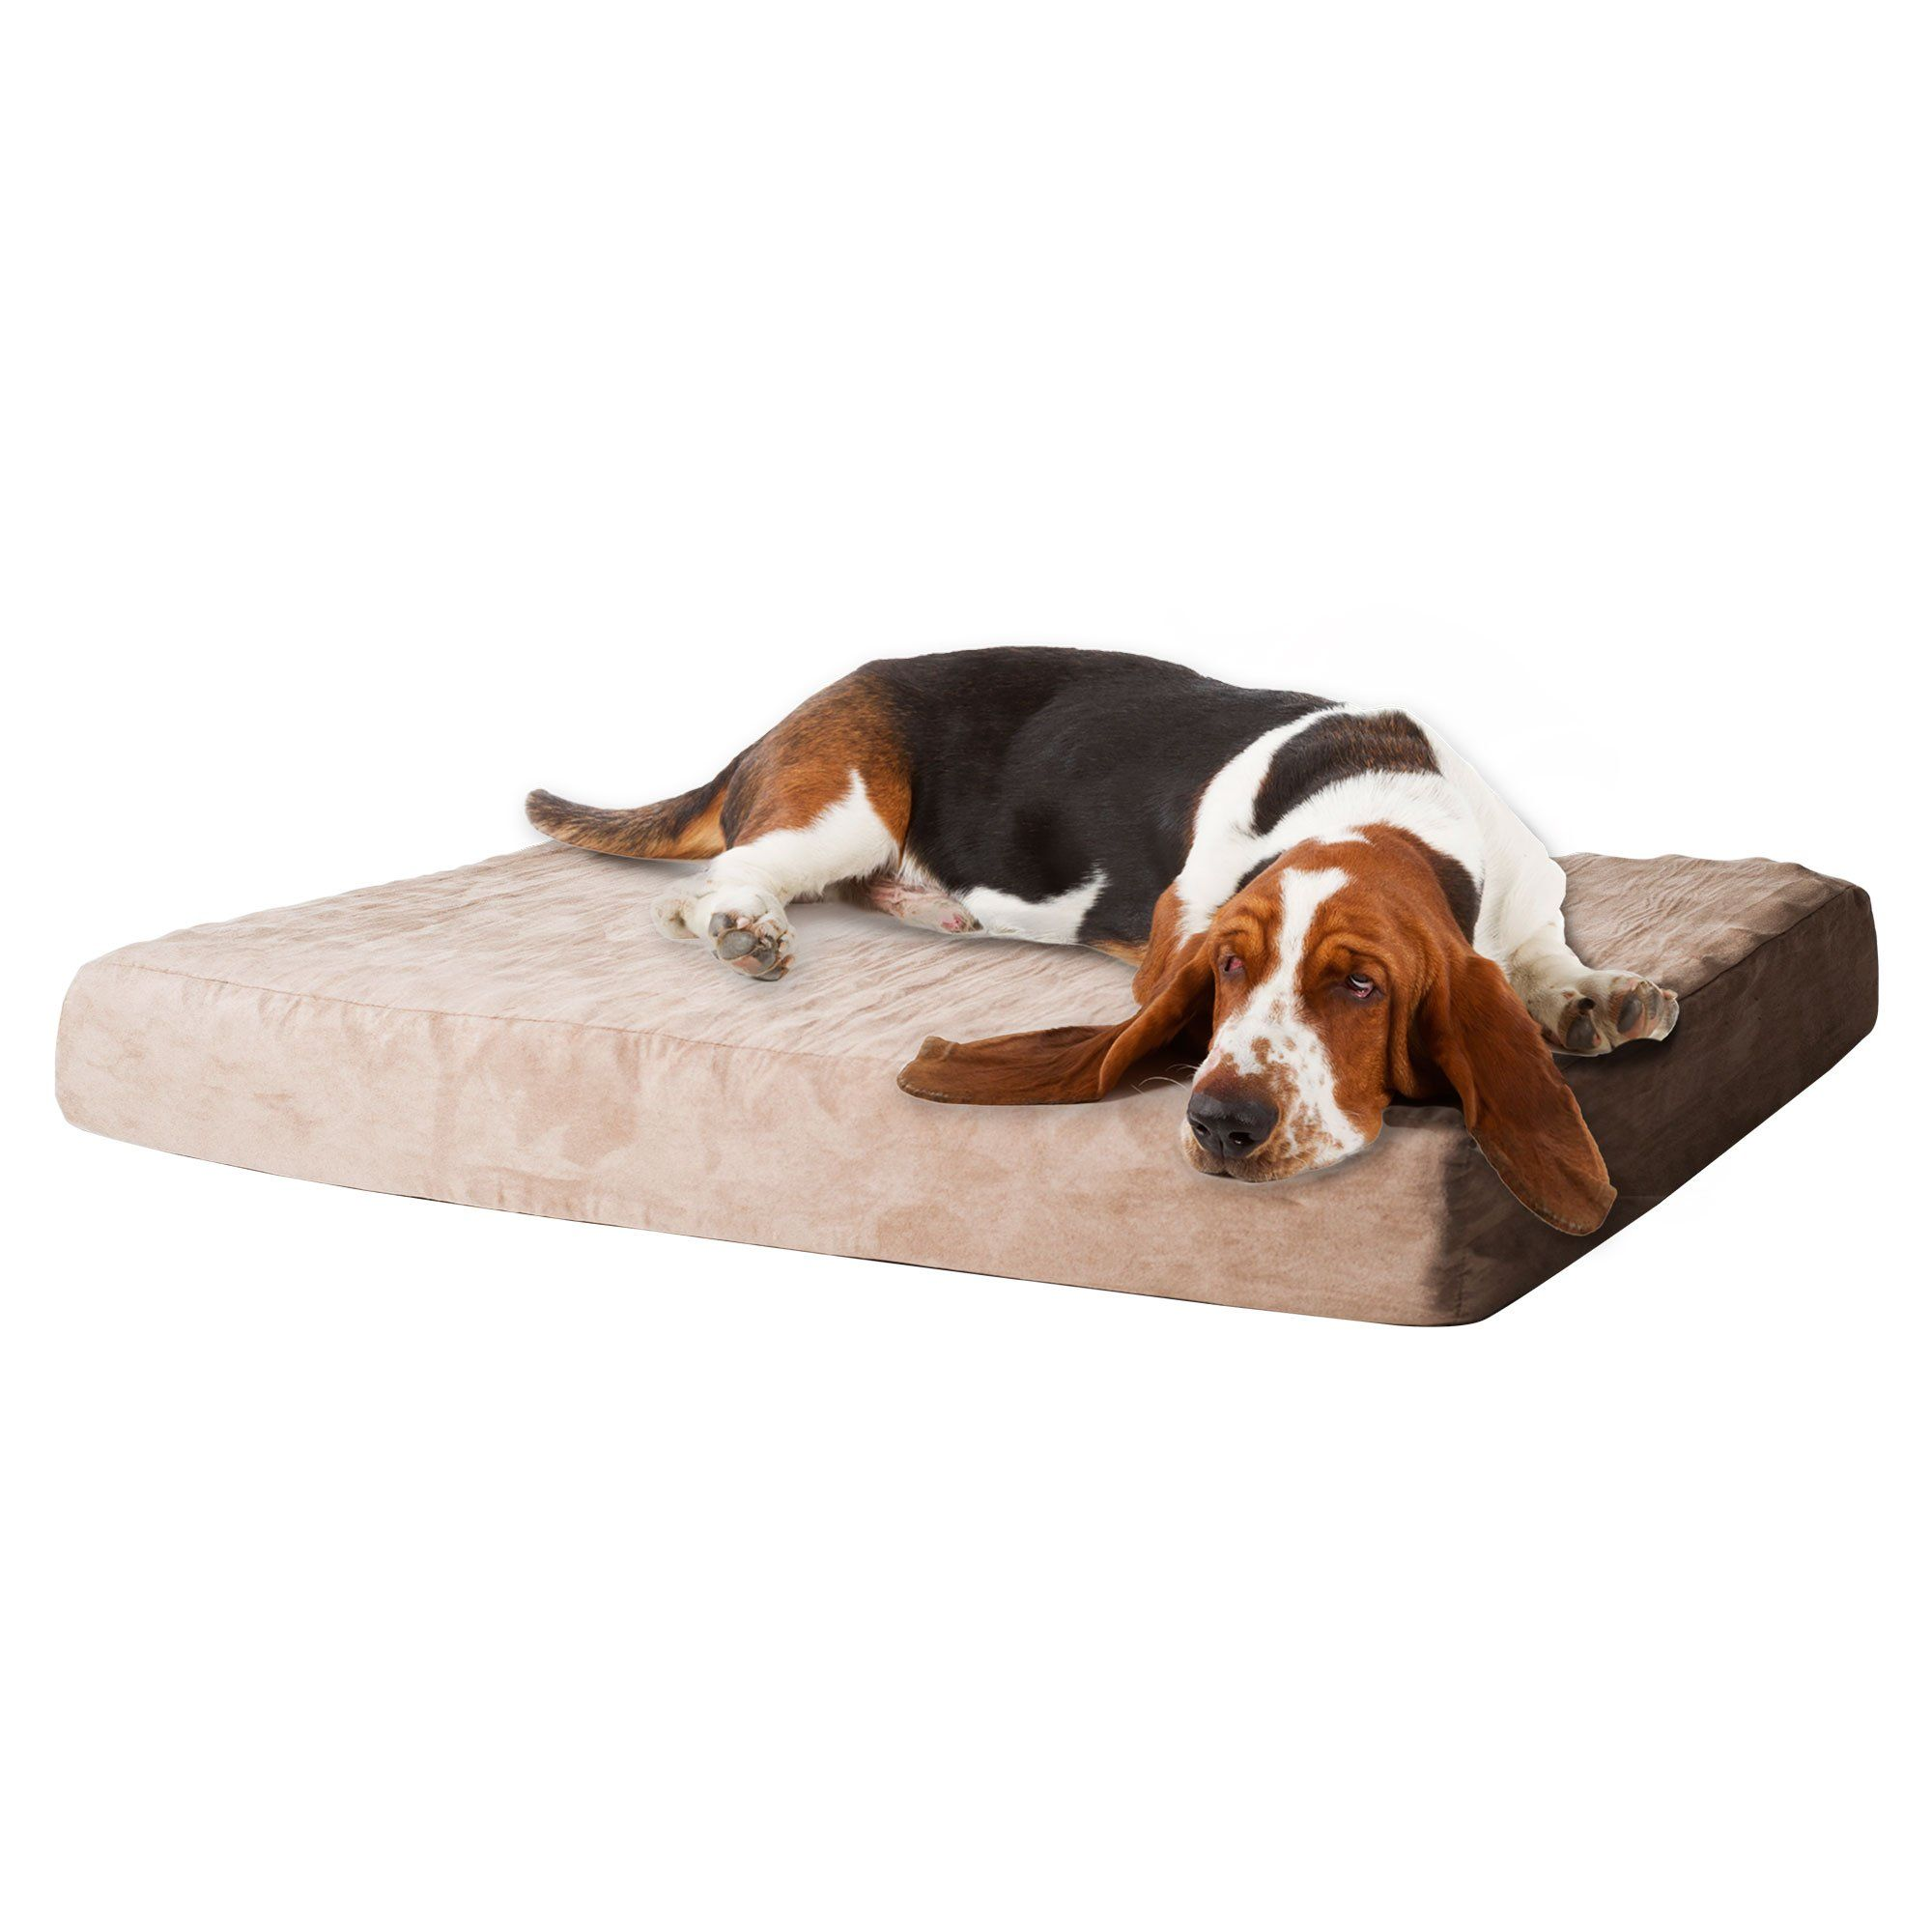 support en category bedding shop foam memory and available orthopedic center beds petco bolster more bed dog petcostore options